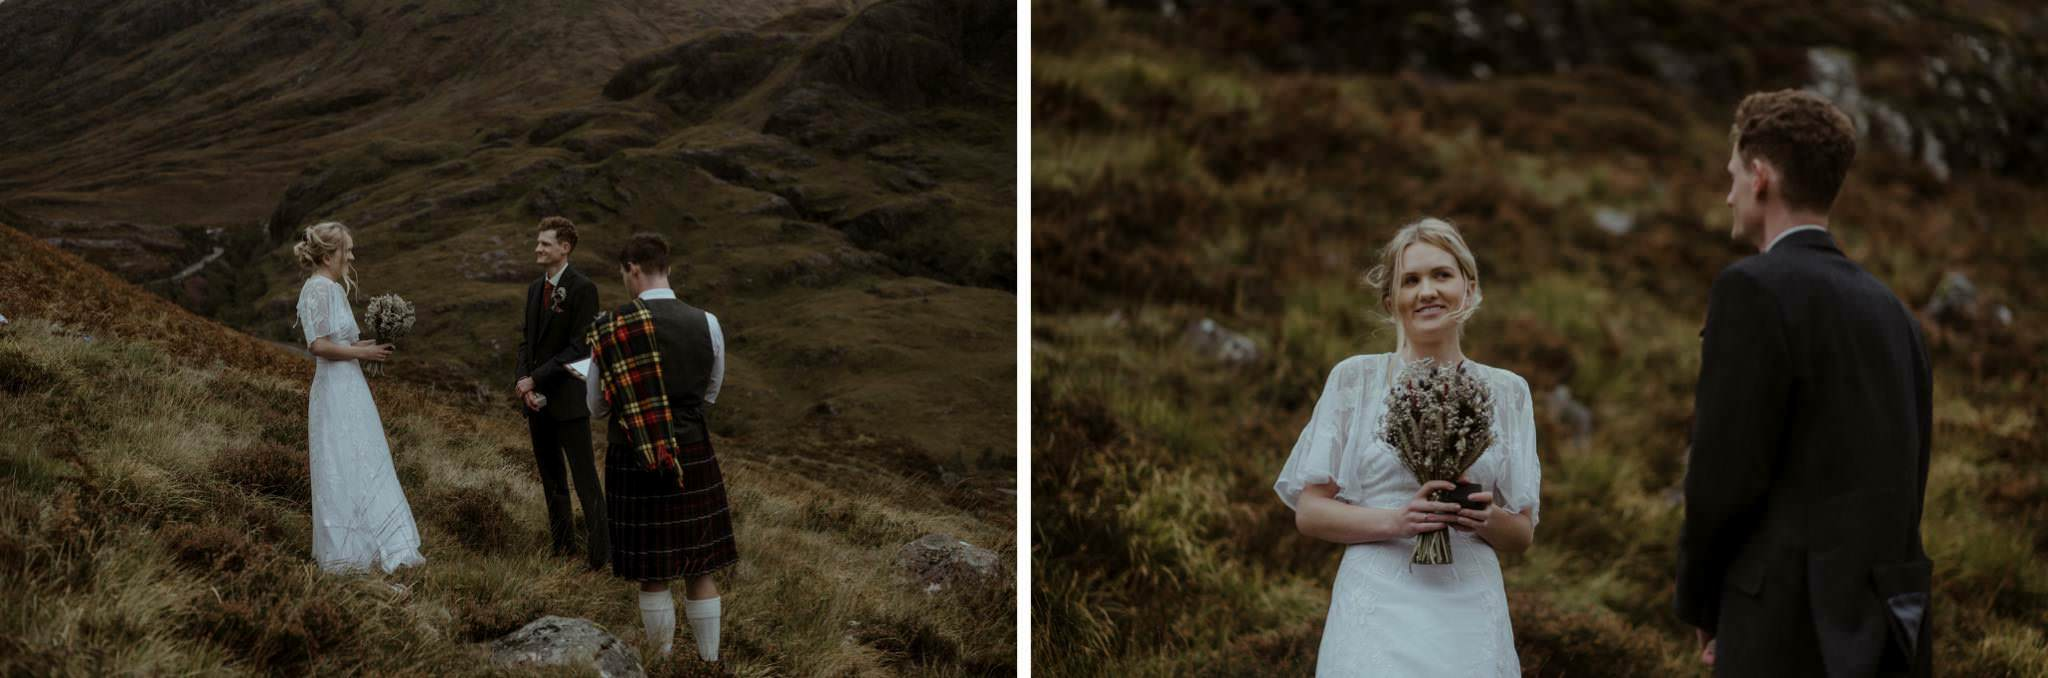 Intimate wedding for two in Glencoe Scotland